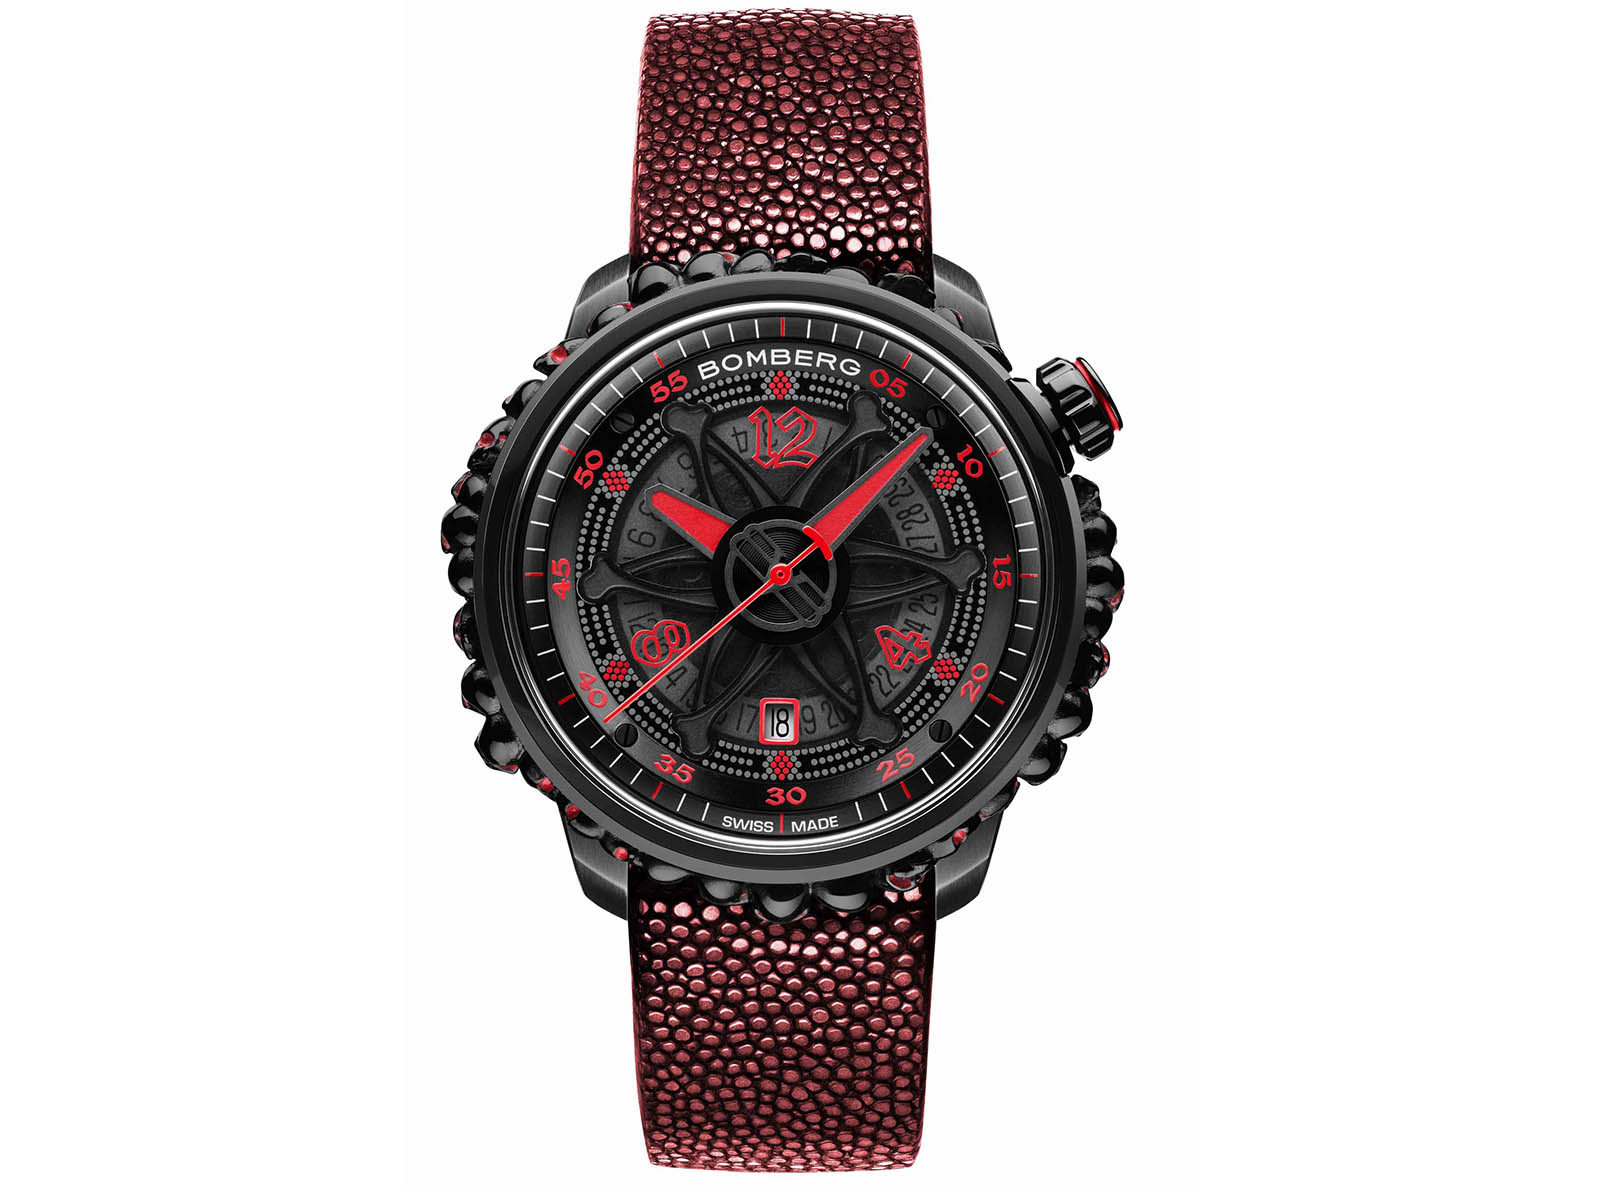 ct43apba-25-2-11-bomberg-gothic-bb-01-automatic-red-catacomb-limited-edition-3.jpg